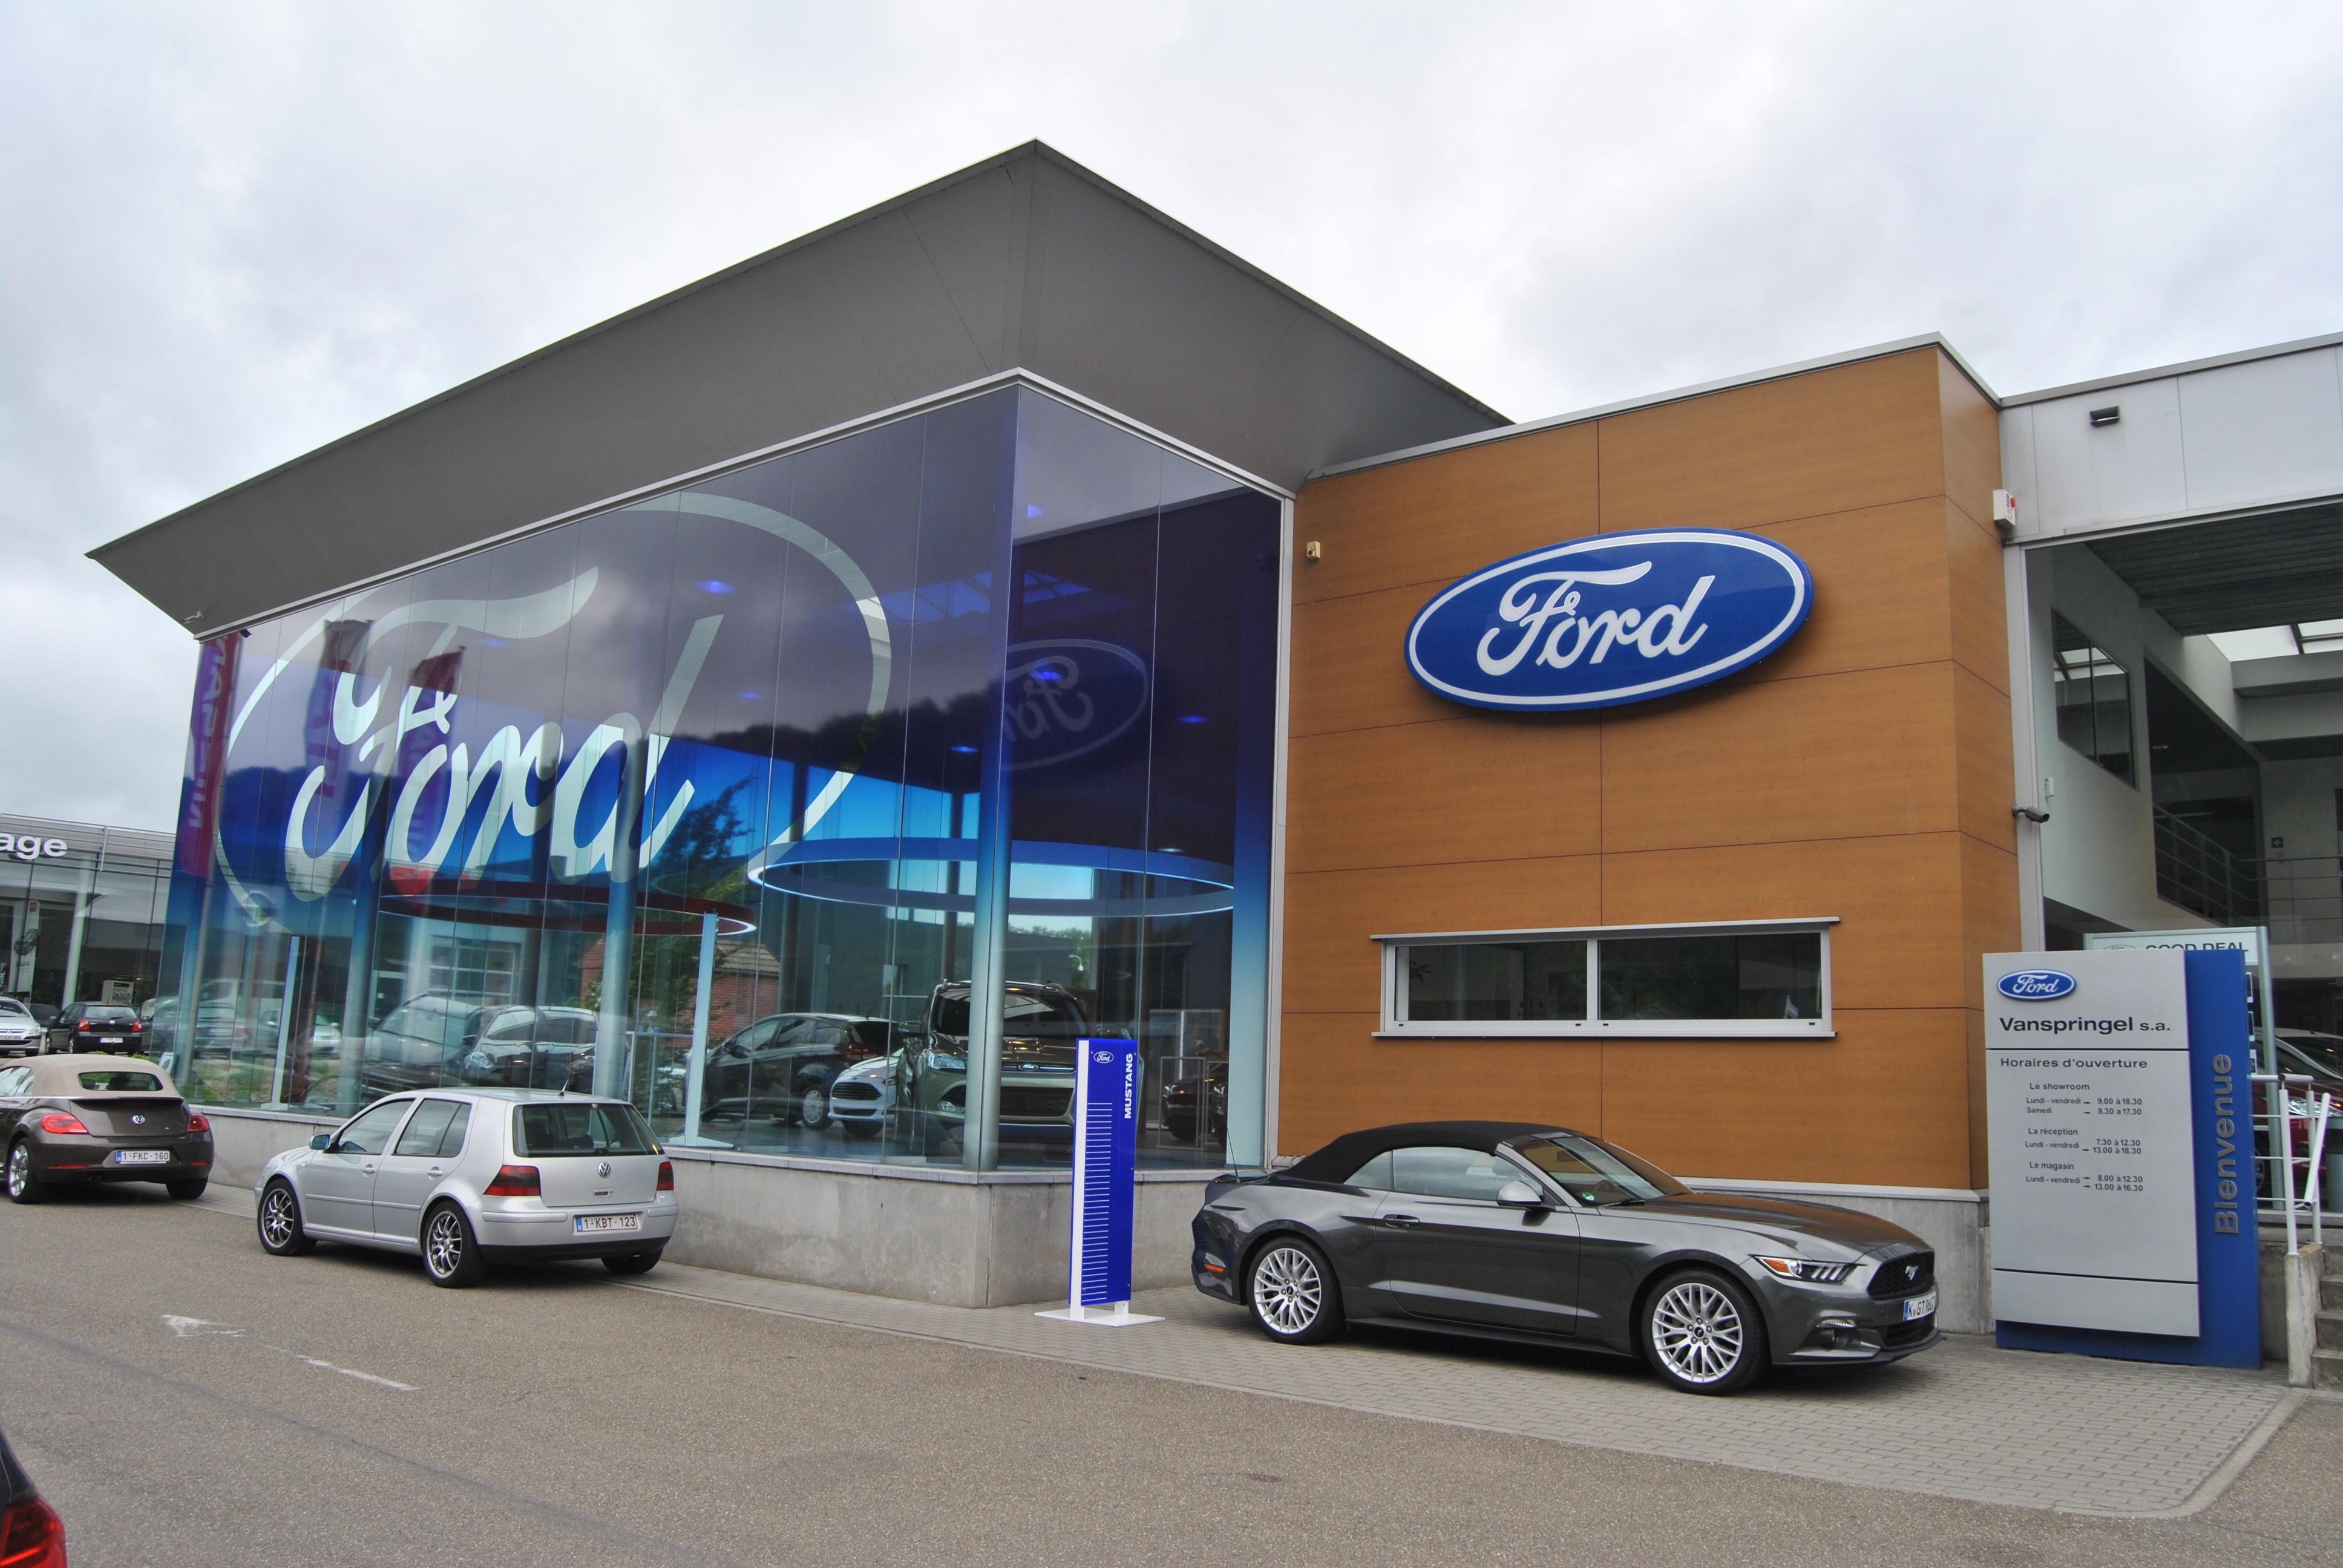 D couvrez le premier ford store de belgique link2fleet for Garage ford rivesaltes